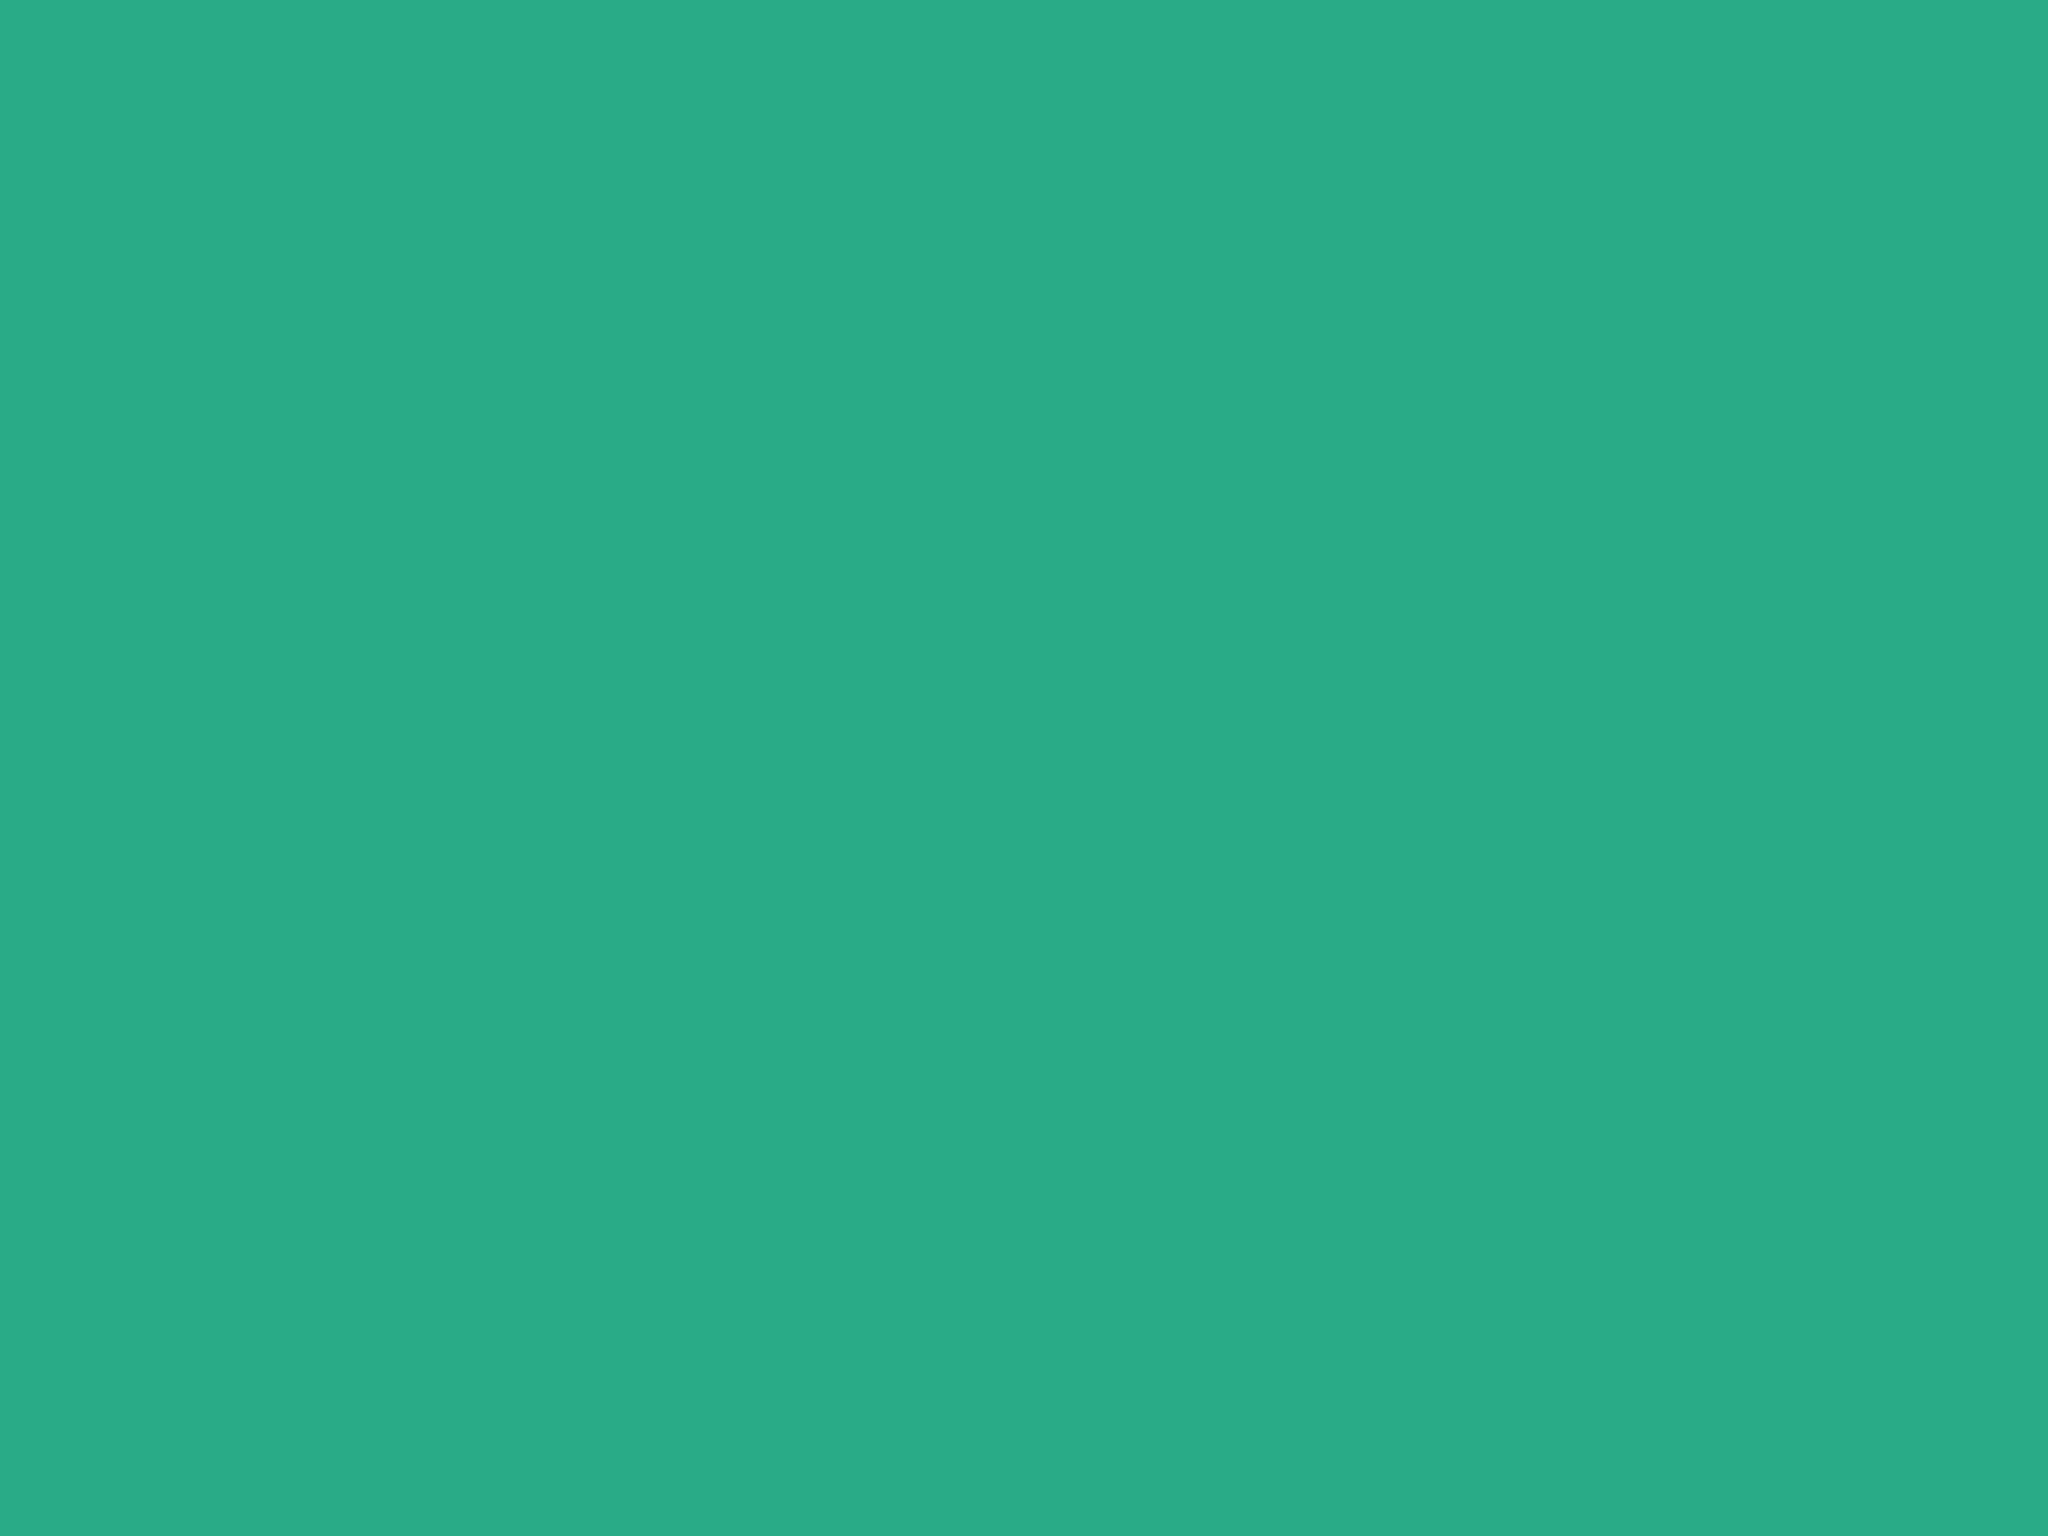 2048x1536 Jungle Green Solid Color Background